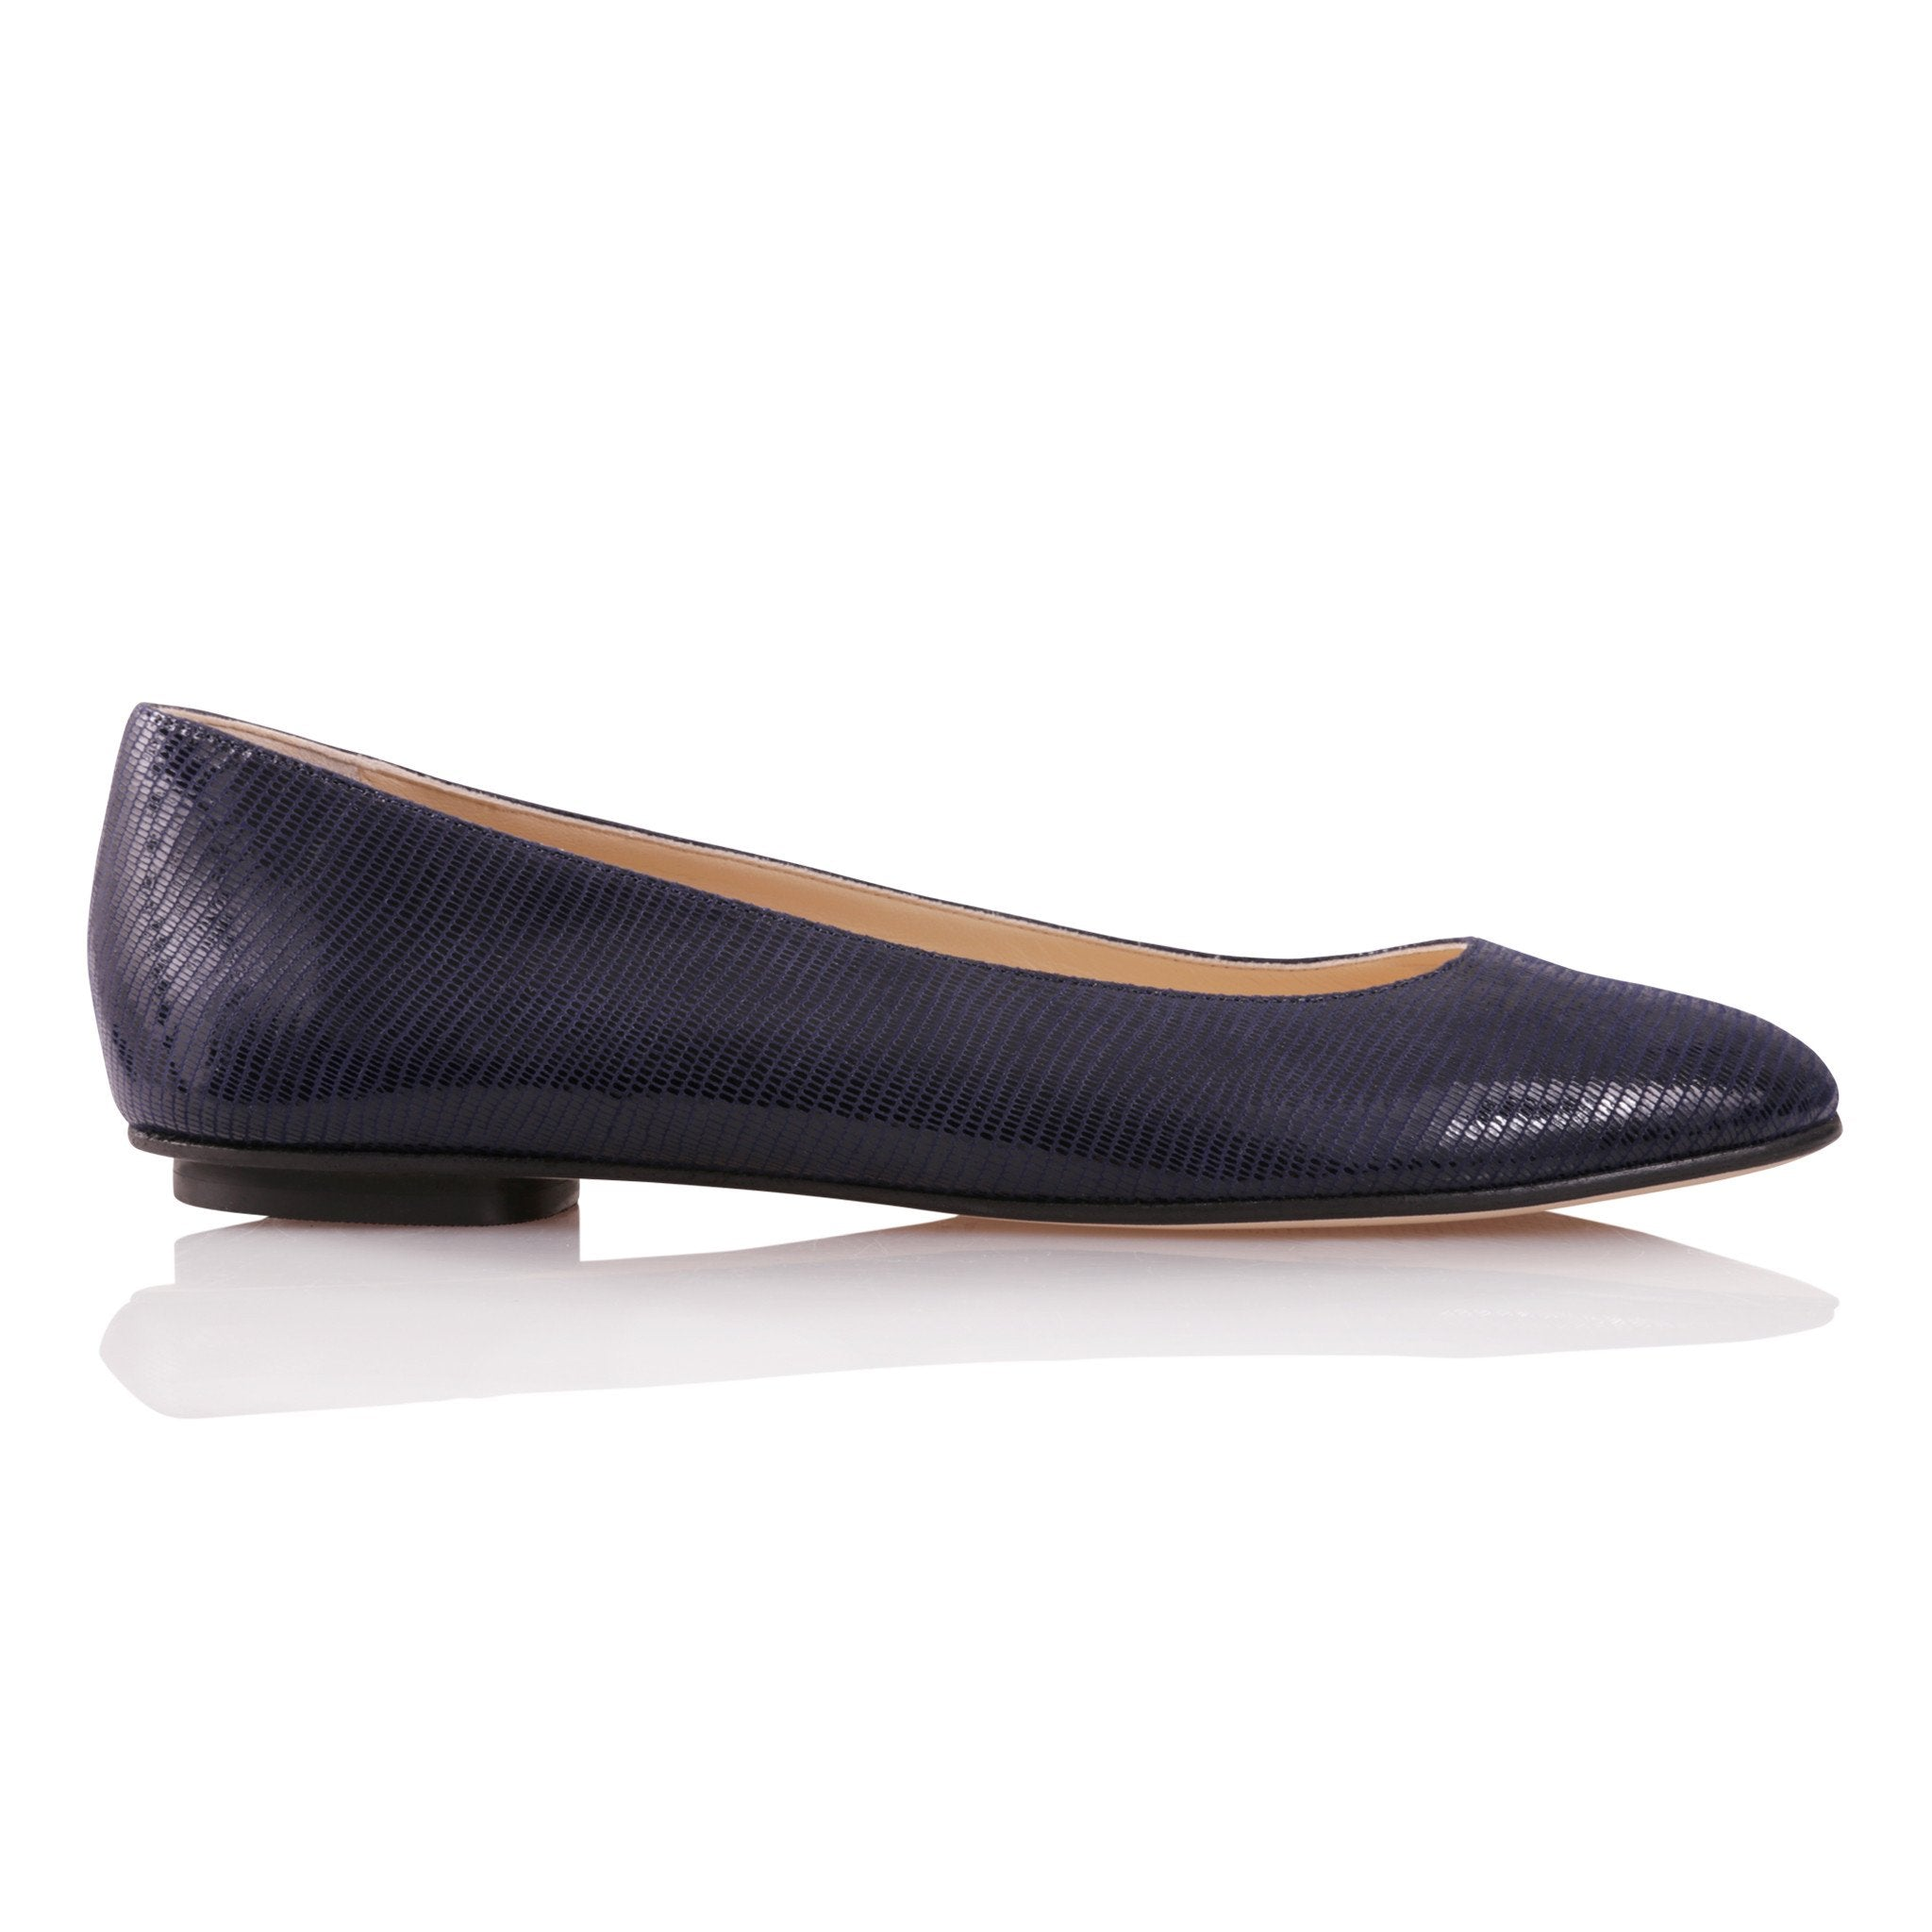 ROMA - Varanus Midnight, VIAJIYU - Women's Hand Made Sustainable Luxury Shoes. Made in Italy. Made to Order.